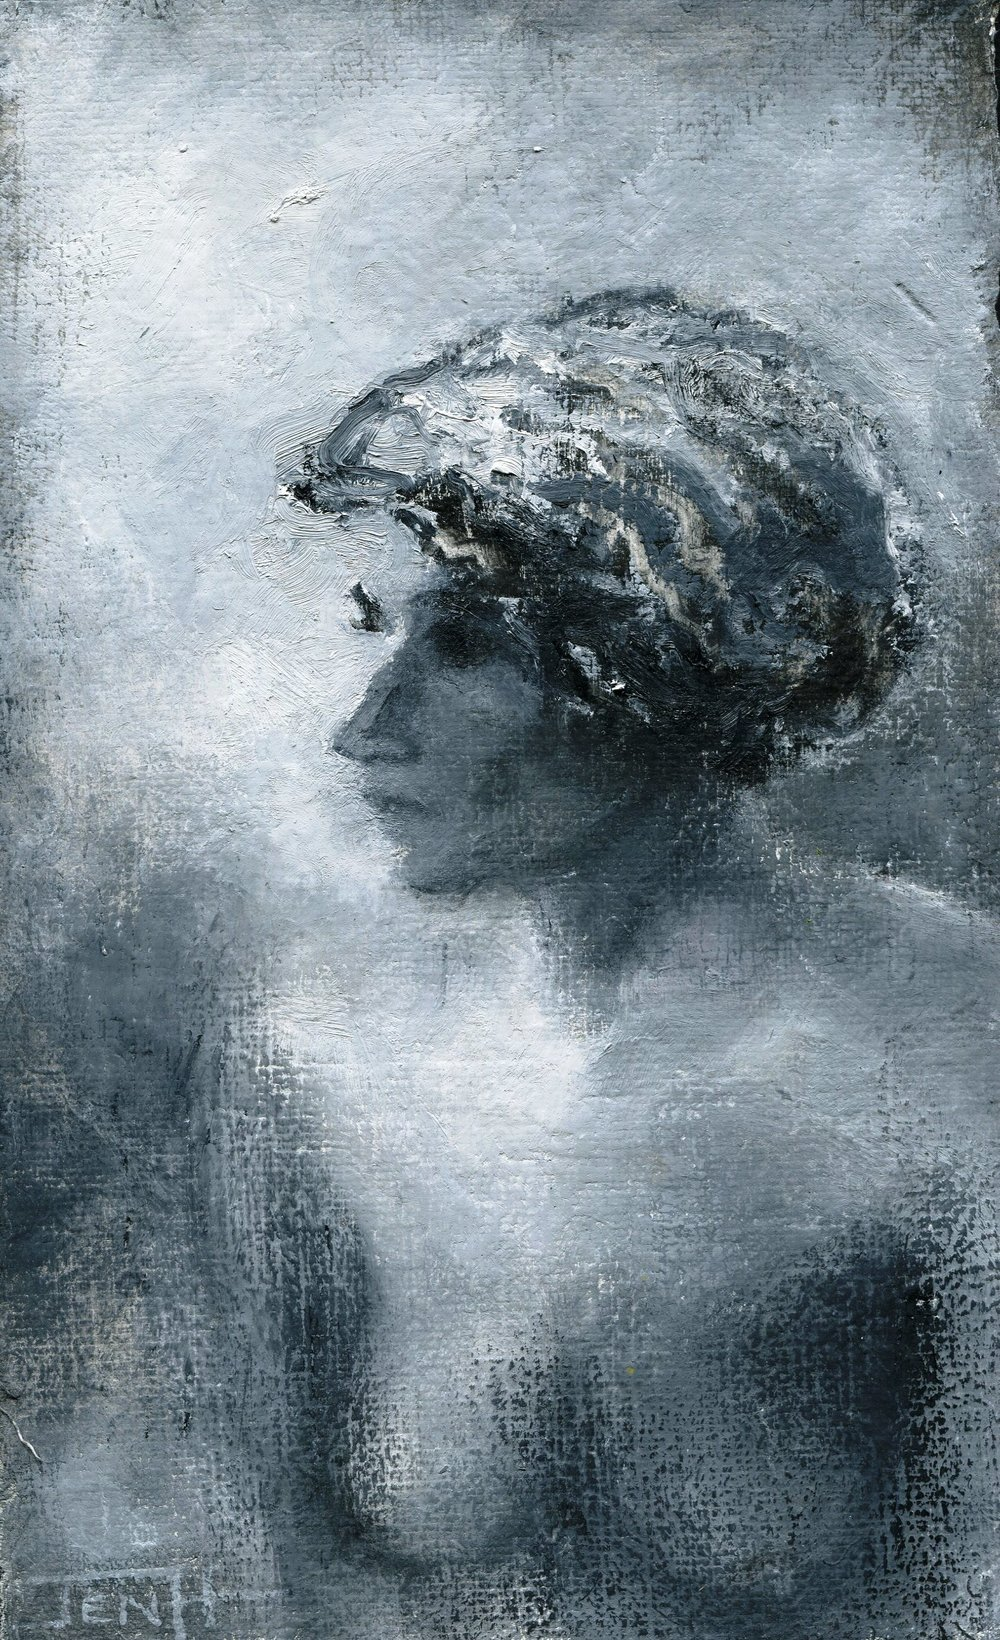 81B JENNY HALLOWES, THE GIRL WITH THE CURLY HAIR, OIL ON GESSOED PAPER